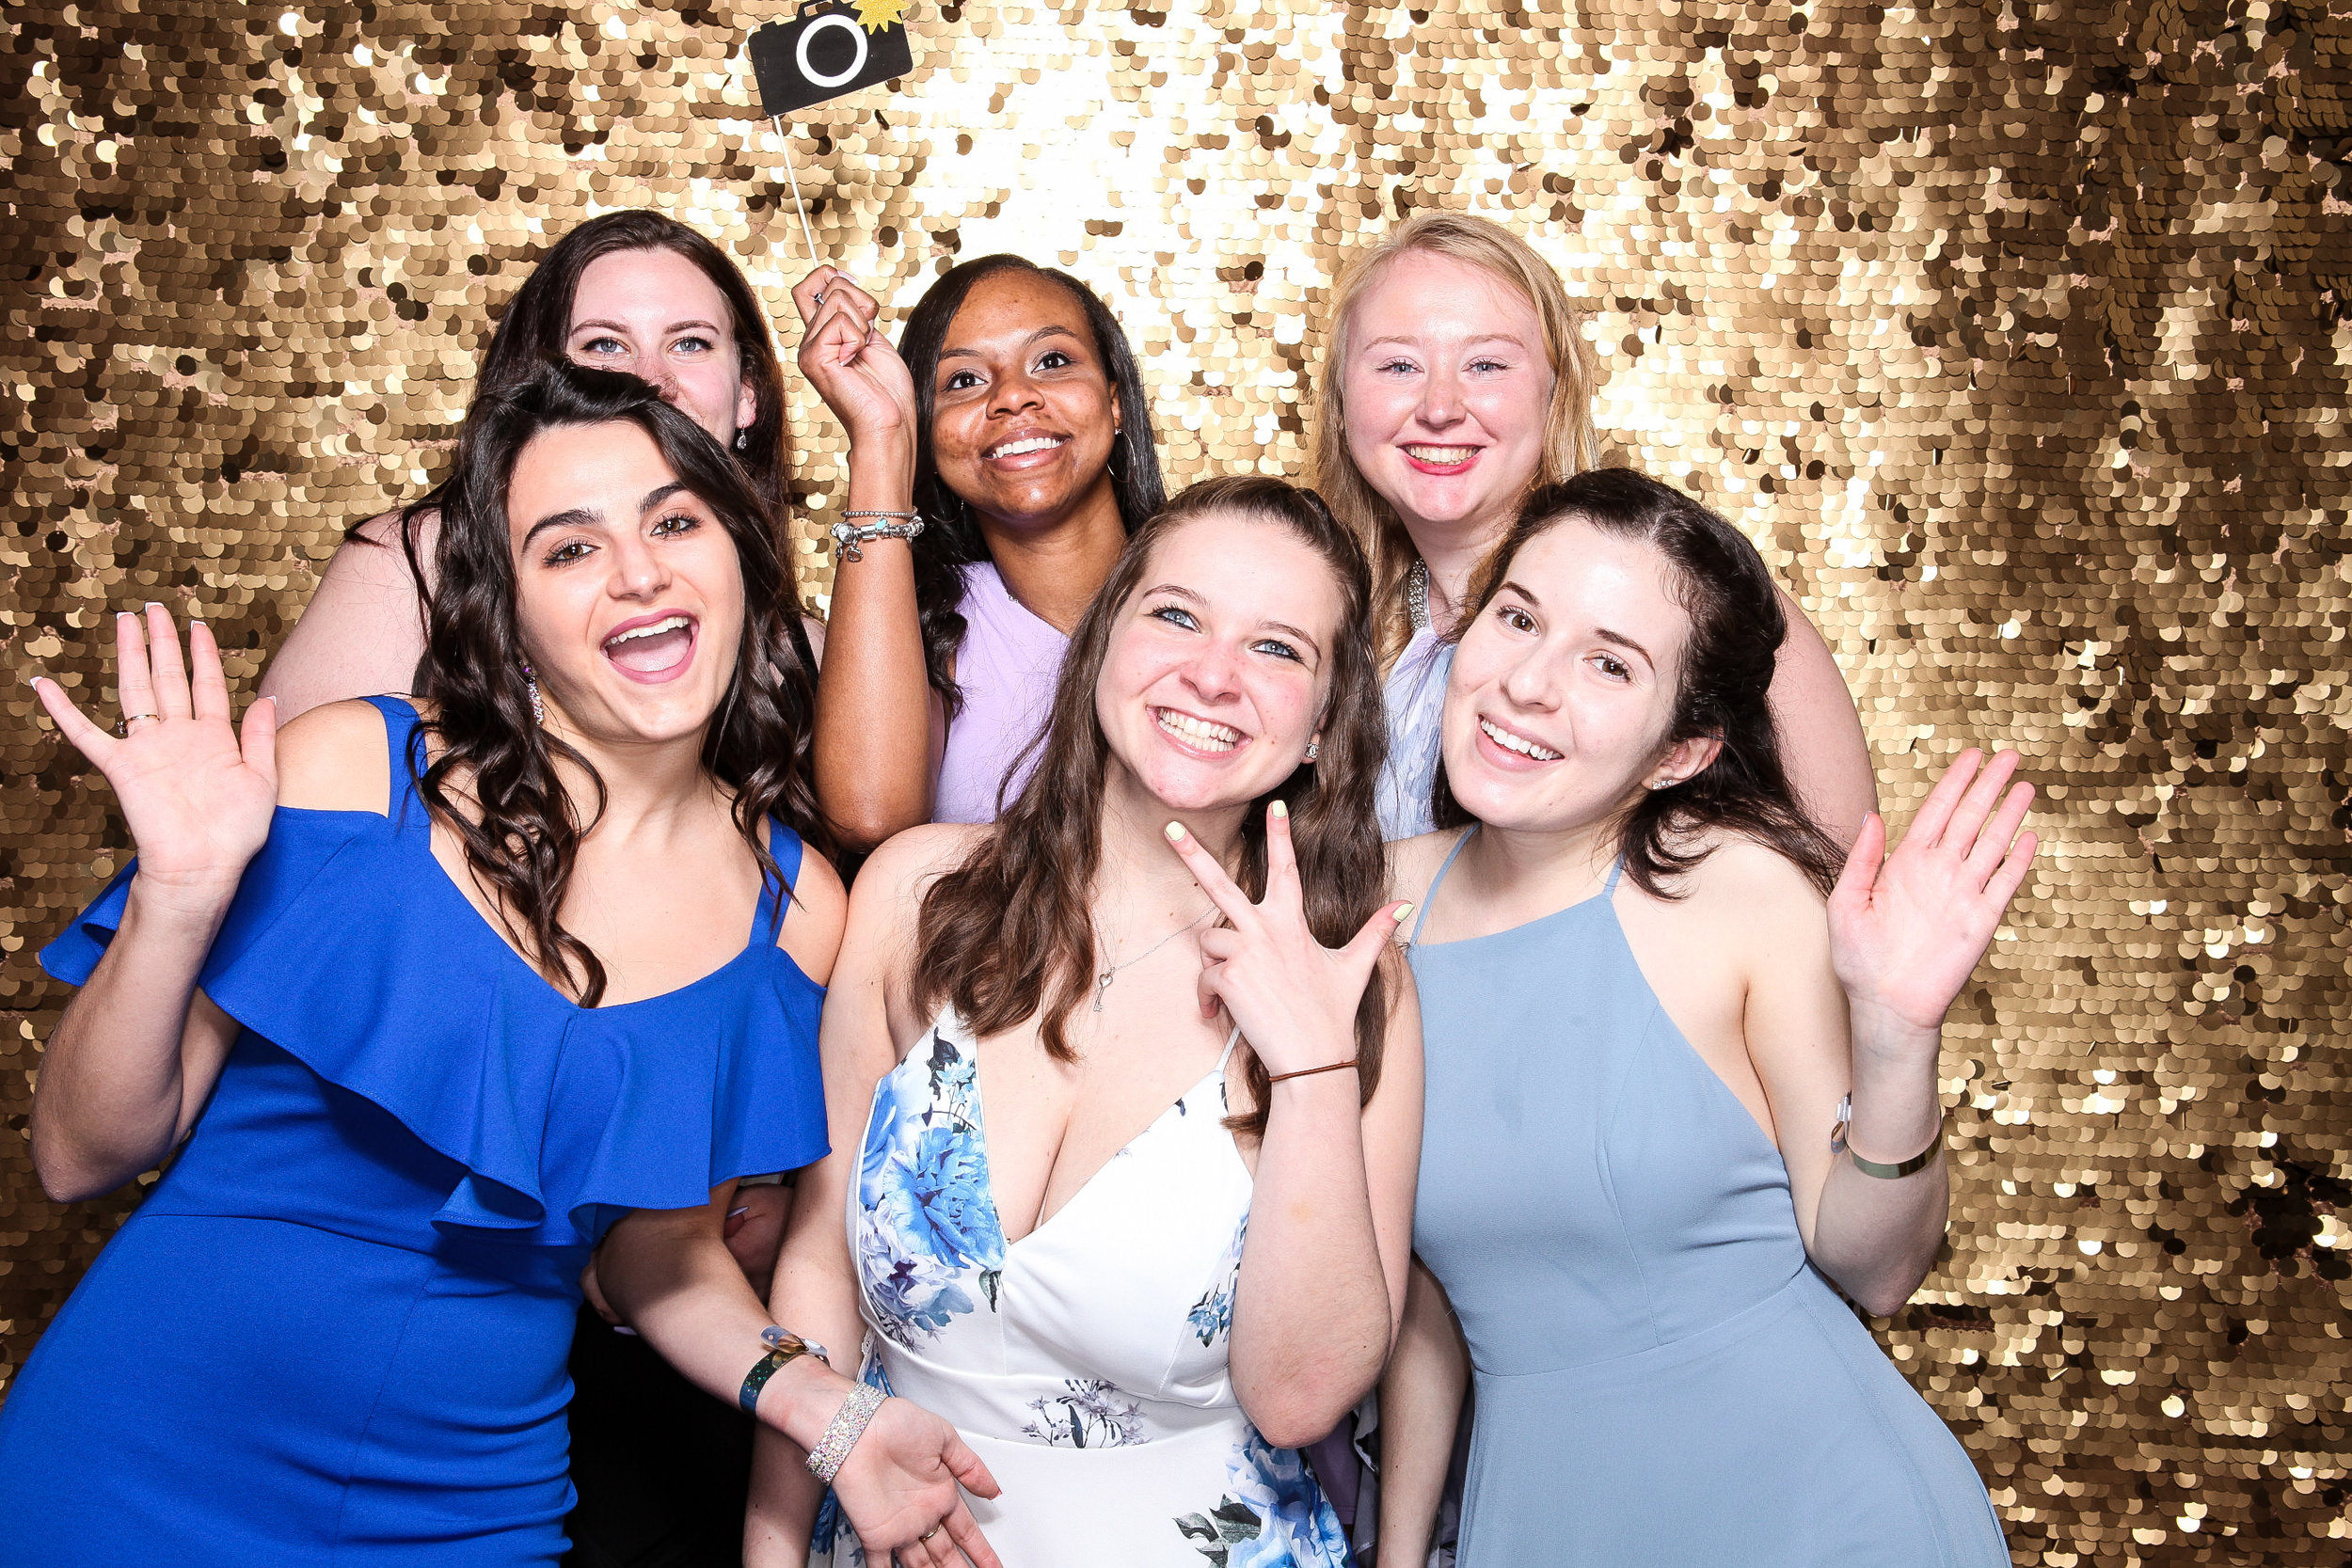 20190503_Adelphi_Senior_Formal-030.jpg